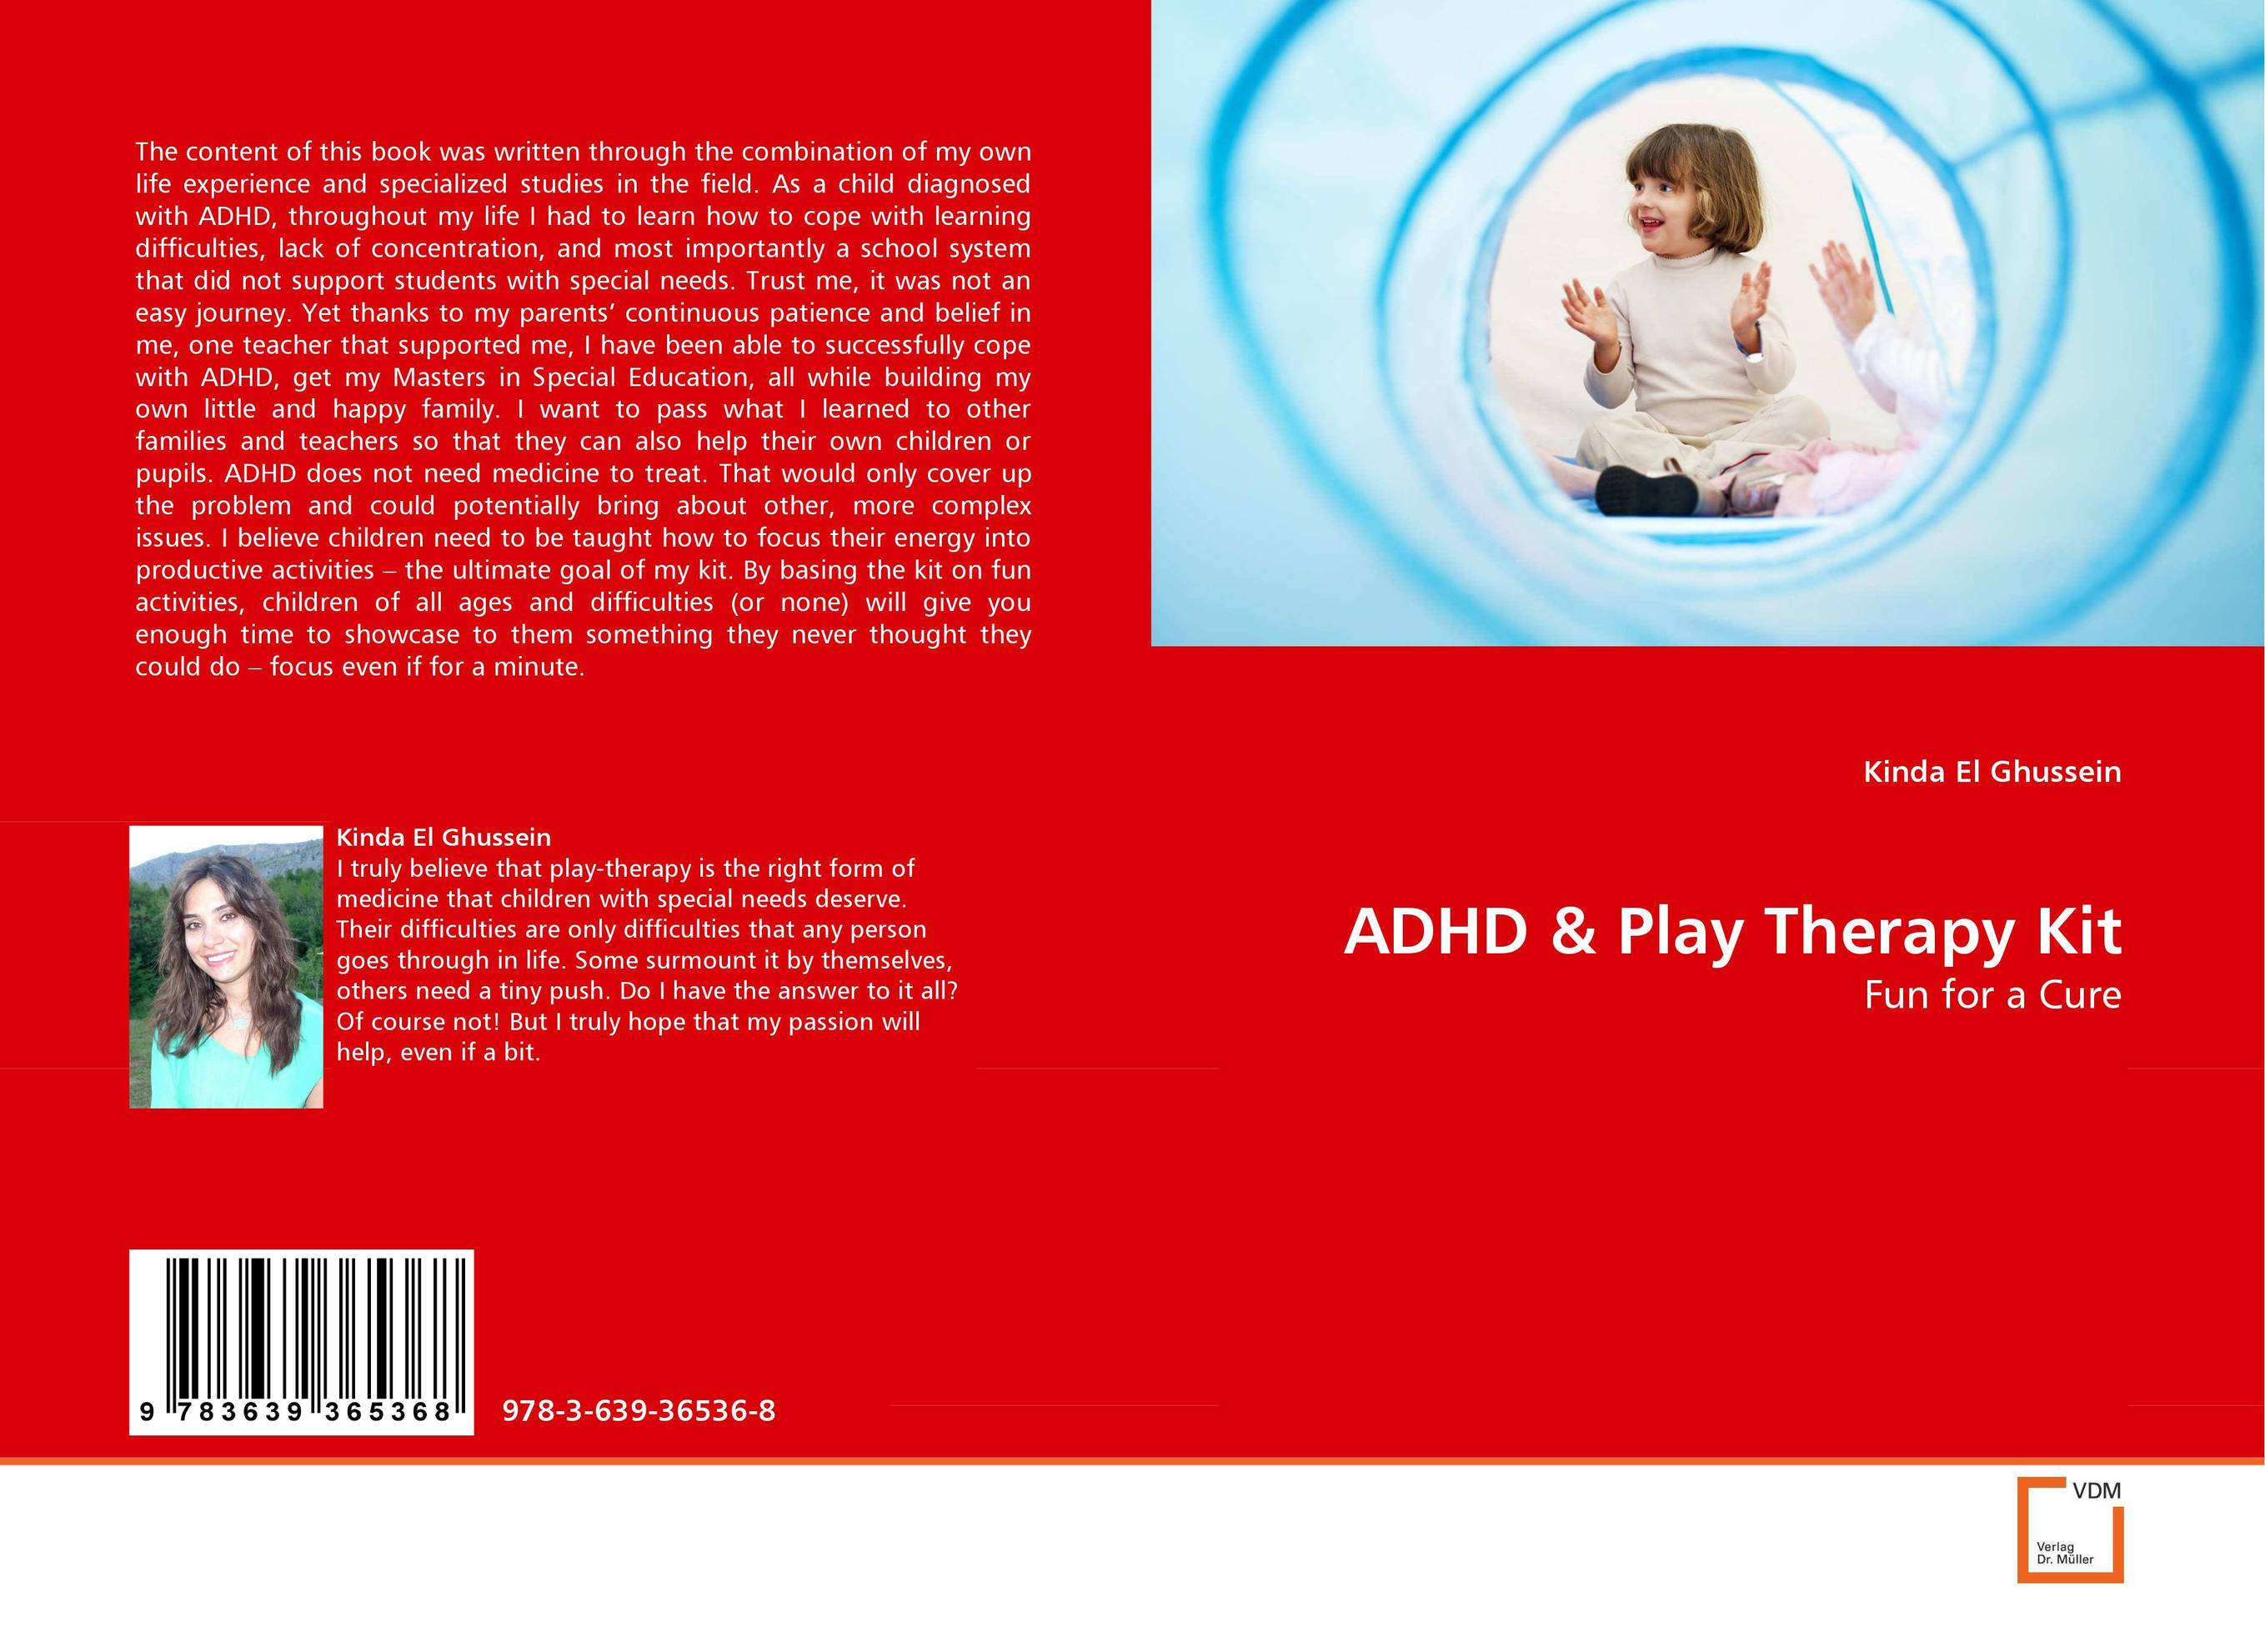 ADHD & Play Therapy Kit the shade of my own tree